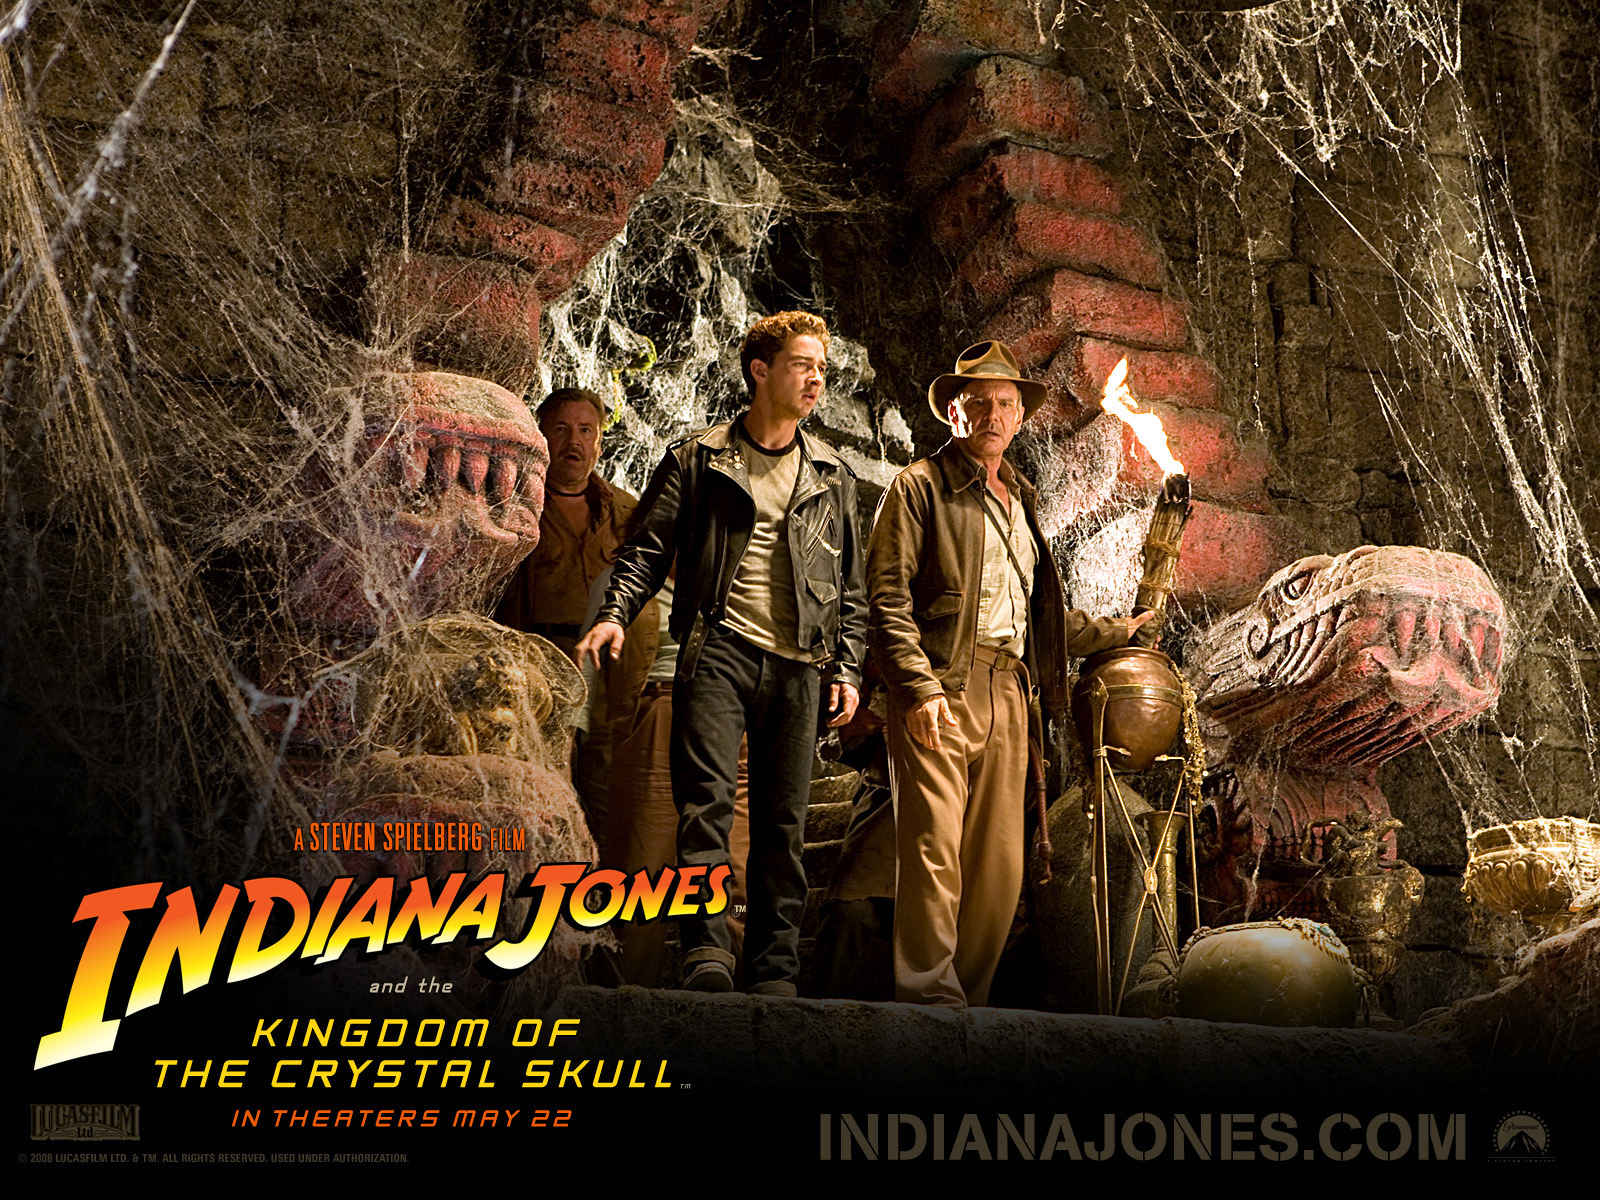 Indiana Jones'un dönüşü 3